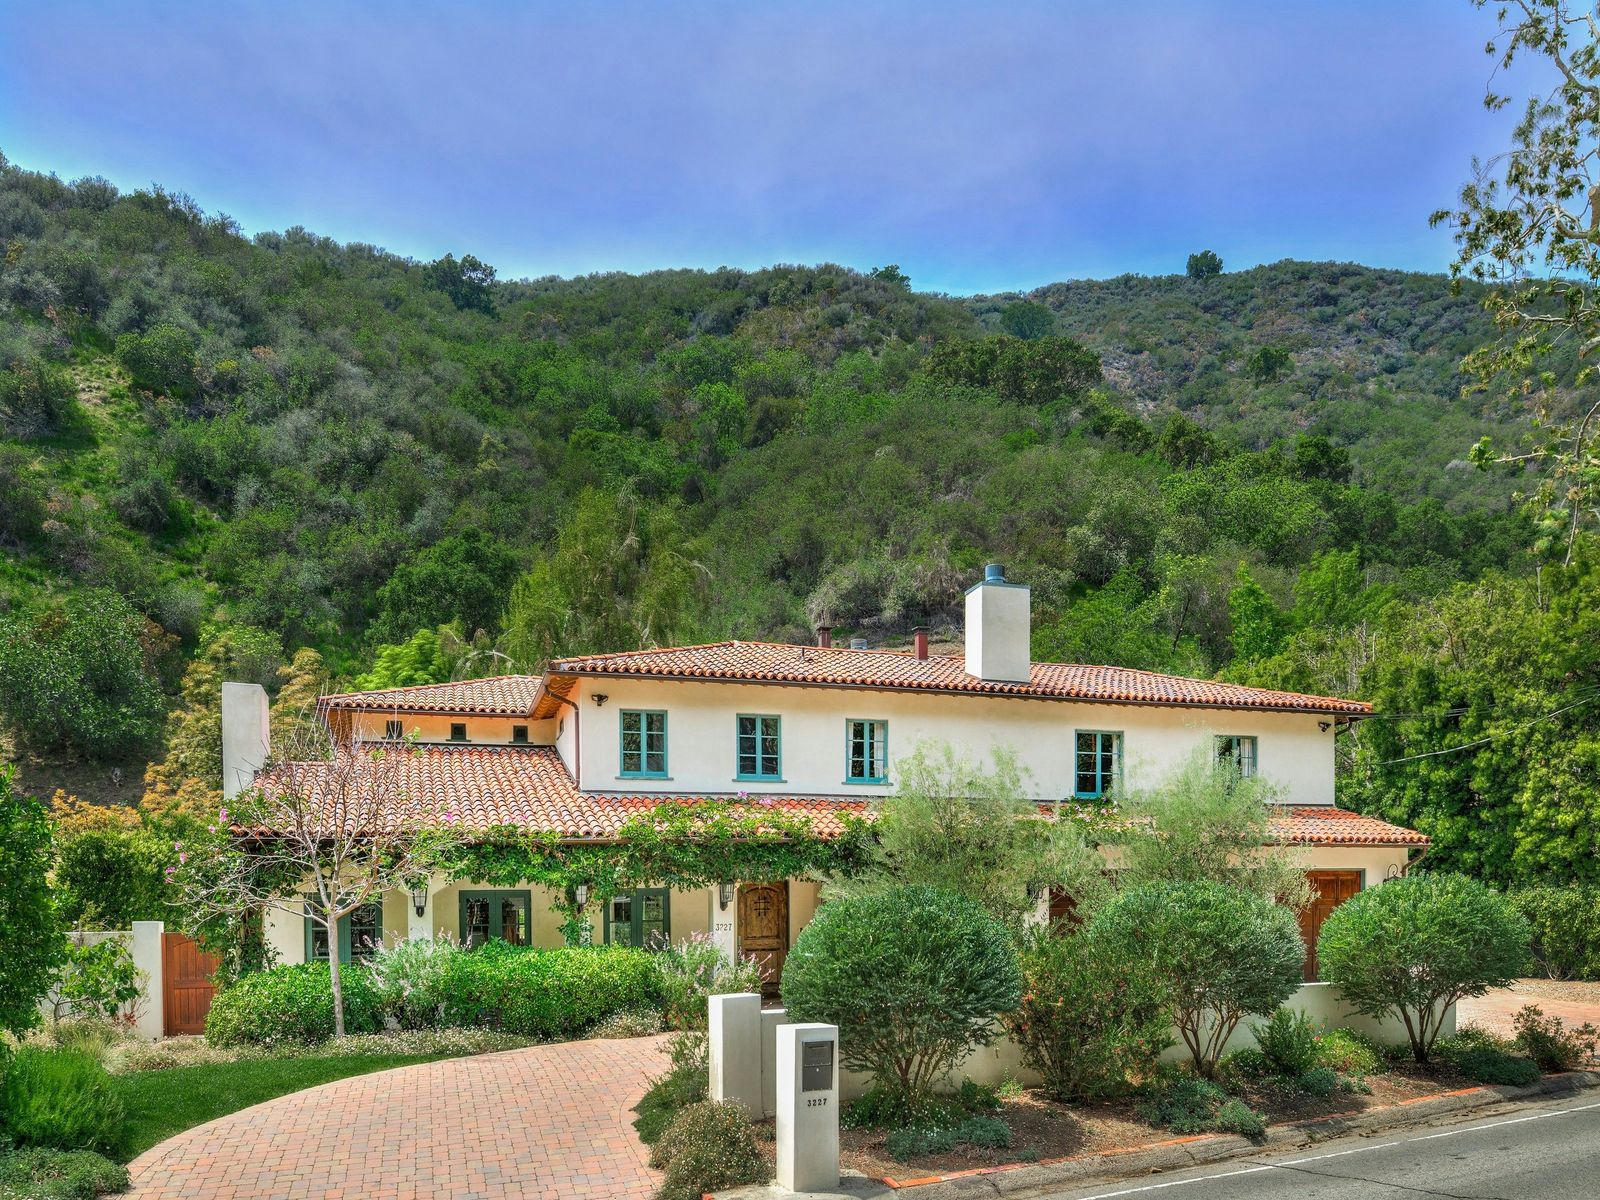 Beautifully Designed Spanish-style Home, Los Angeles CA Single Family Home - Los Angeles Real Estate